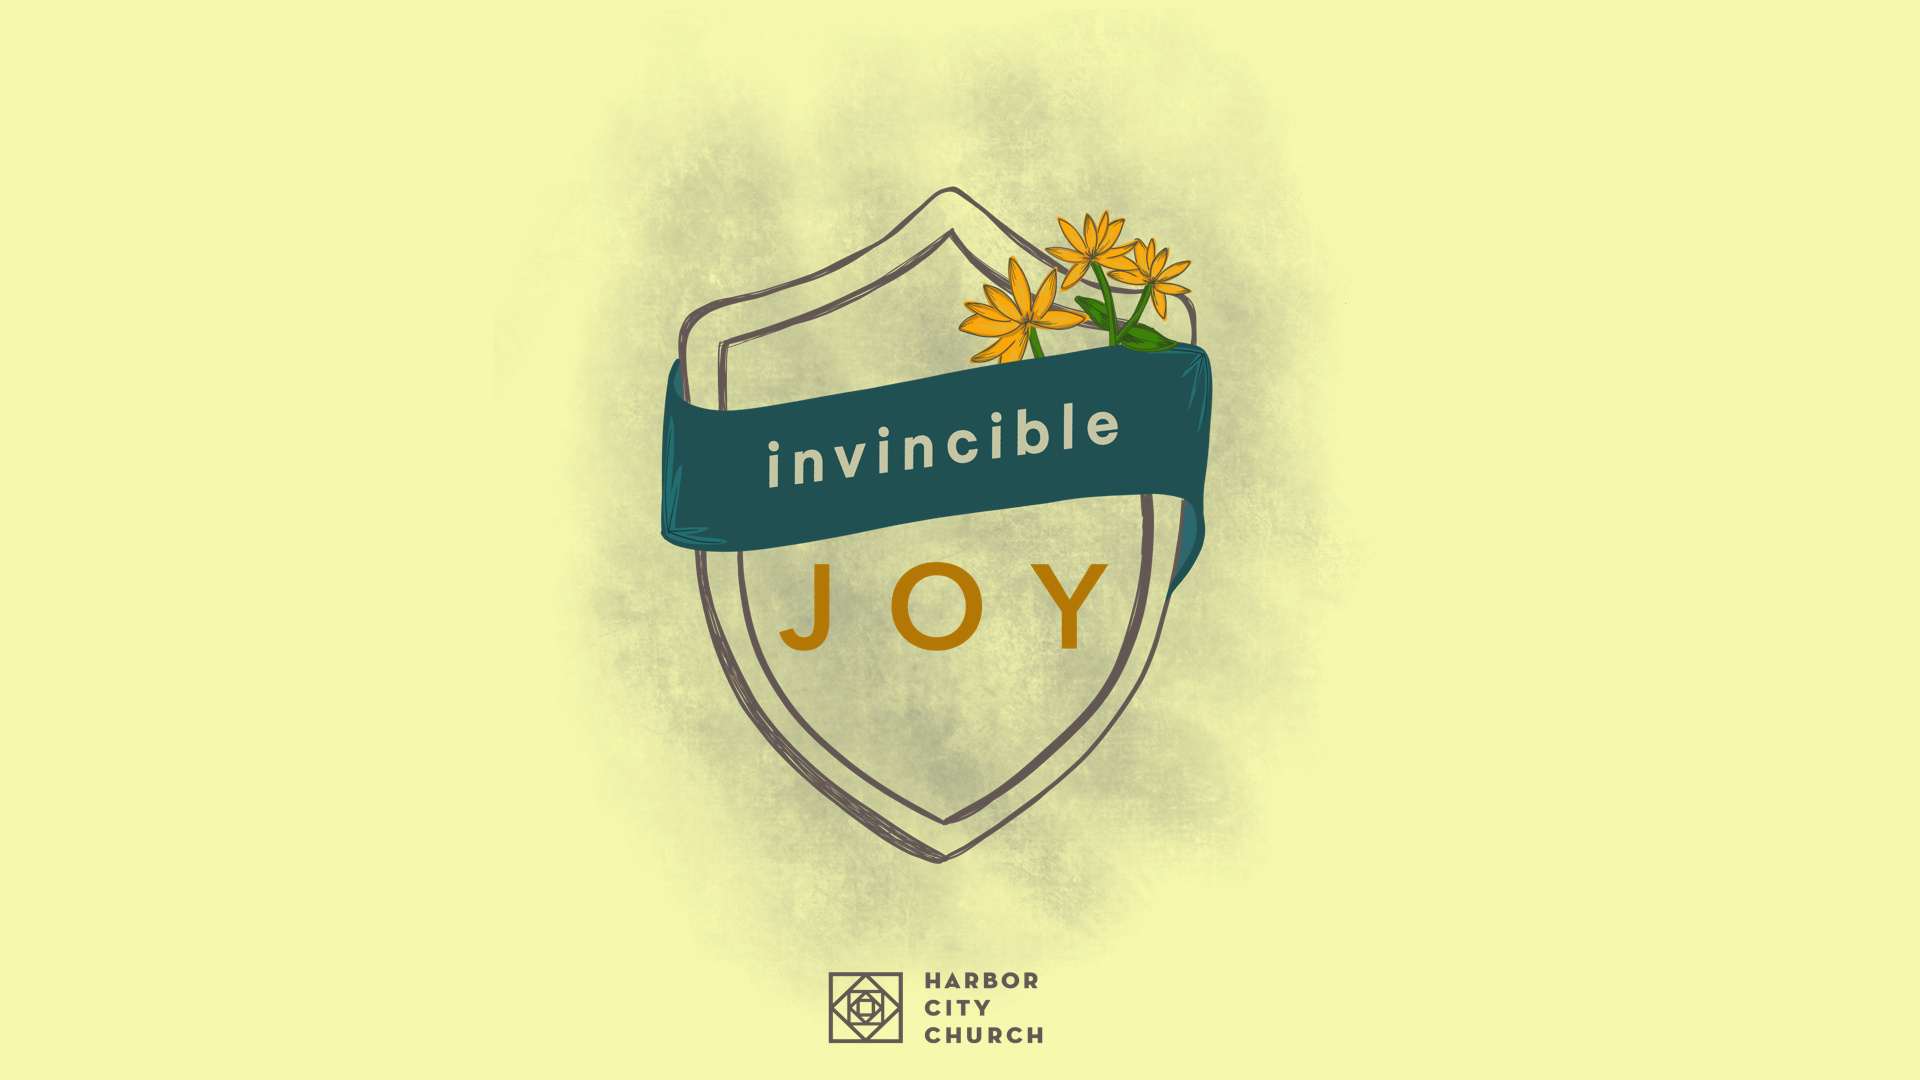 Invincible Joy